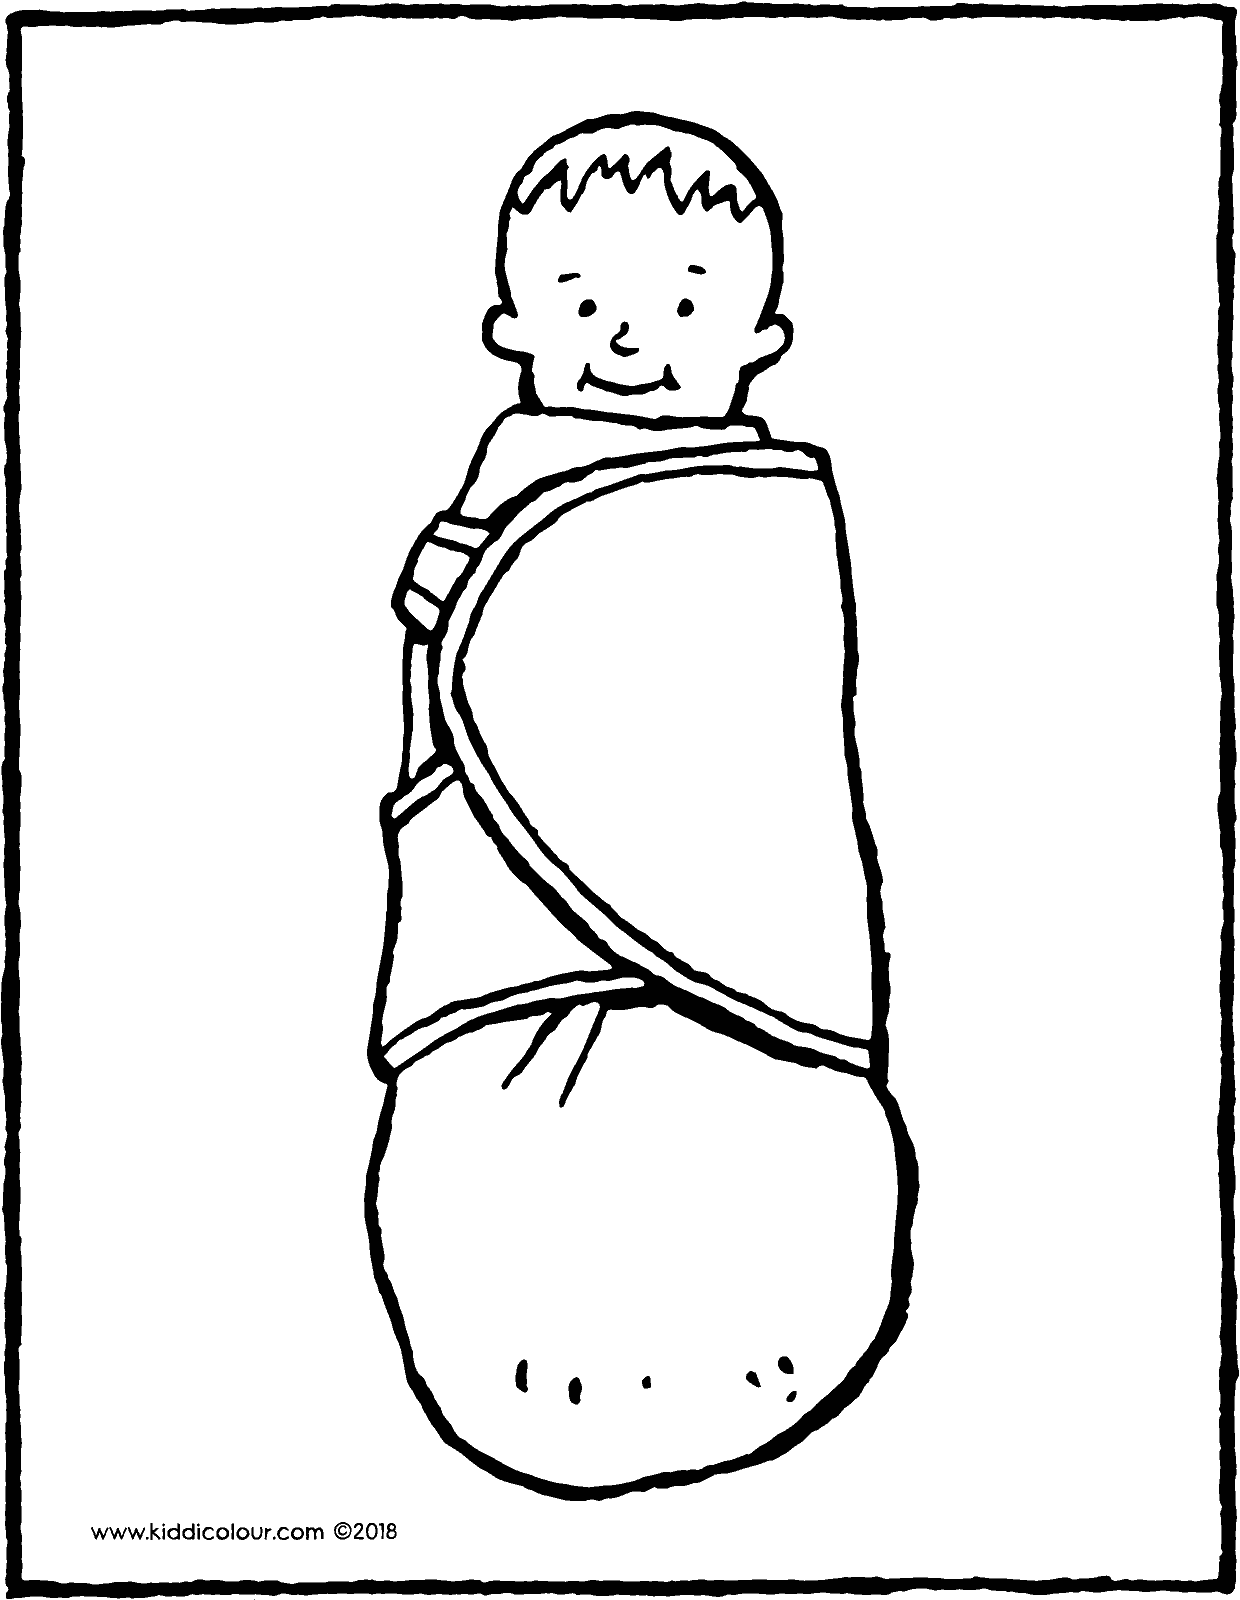 swaddled baby colouring page drawing picture 01V